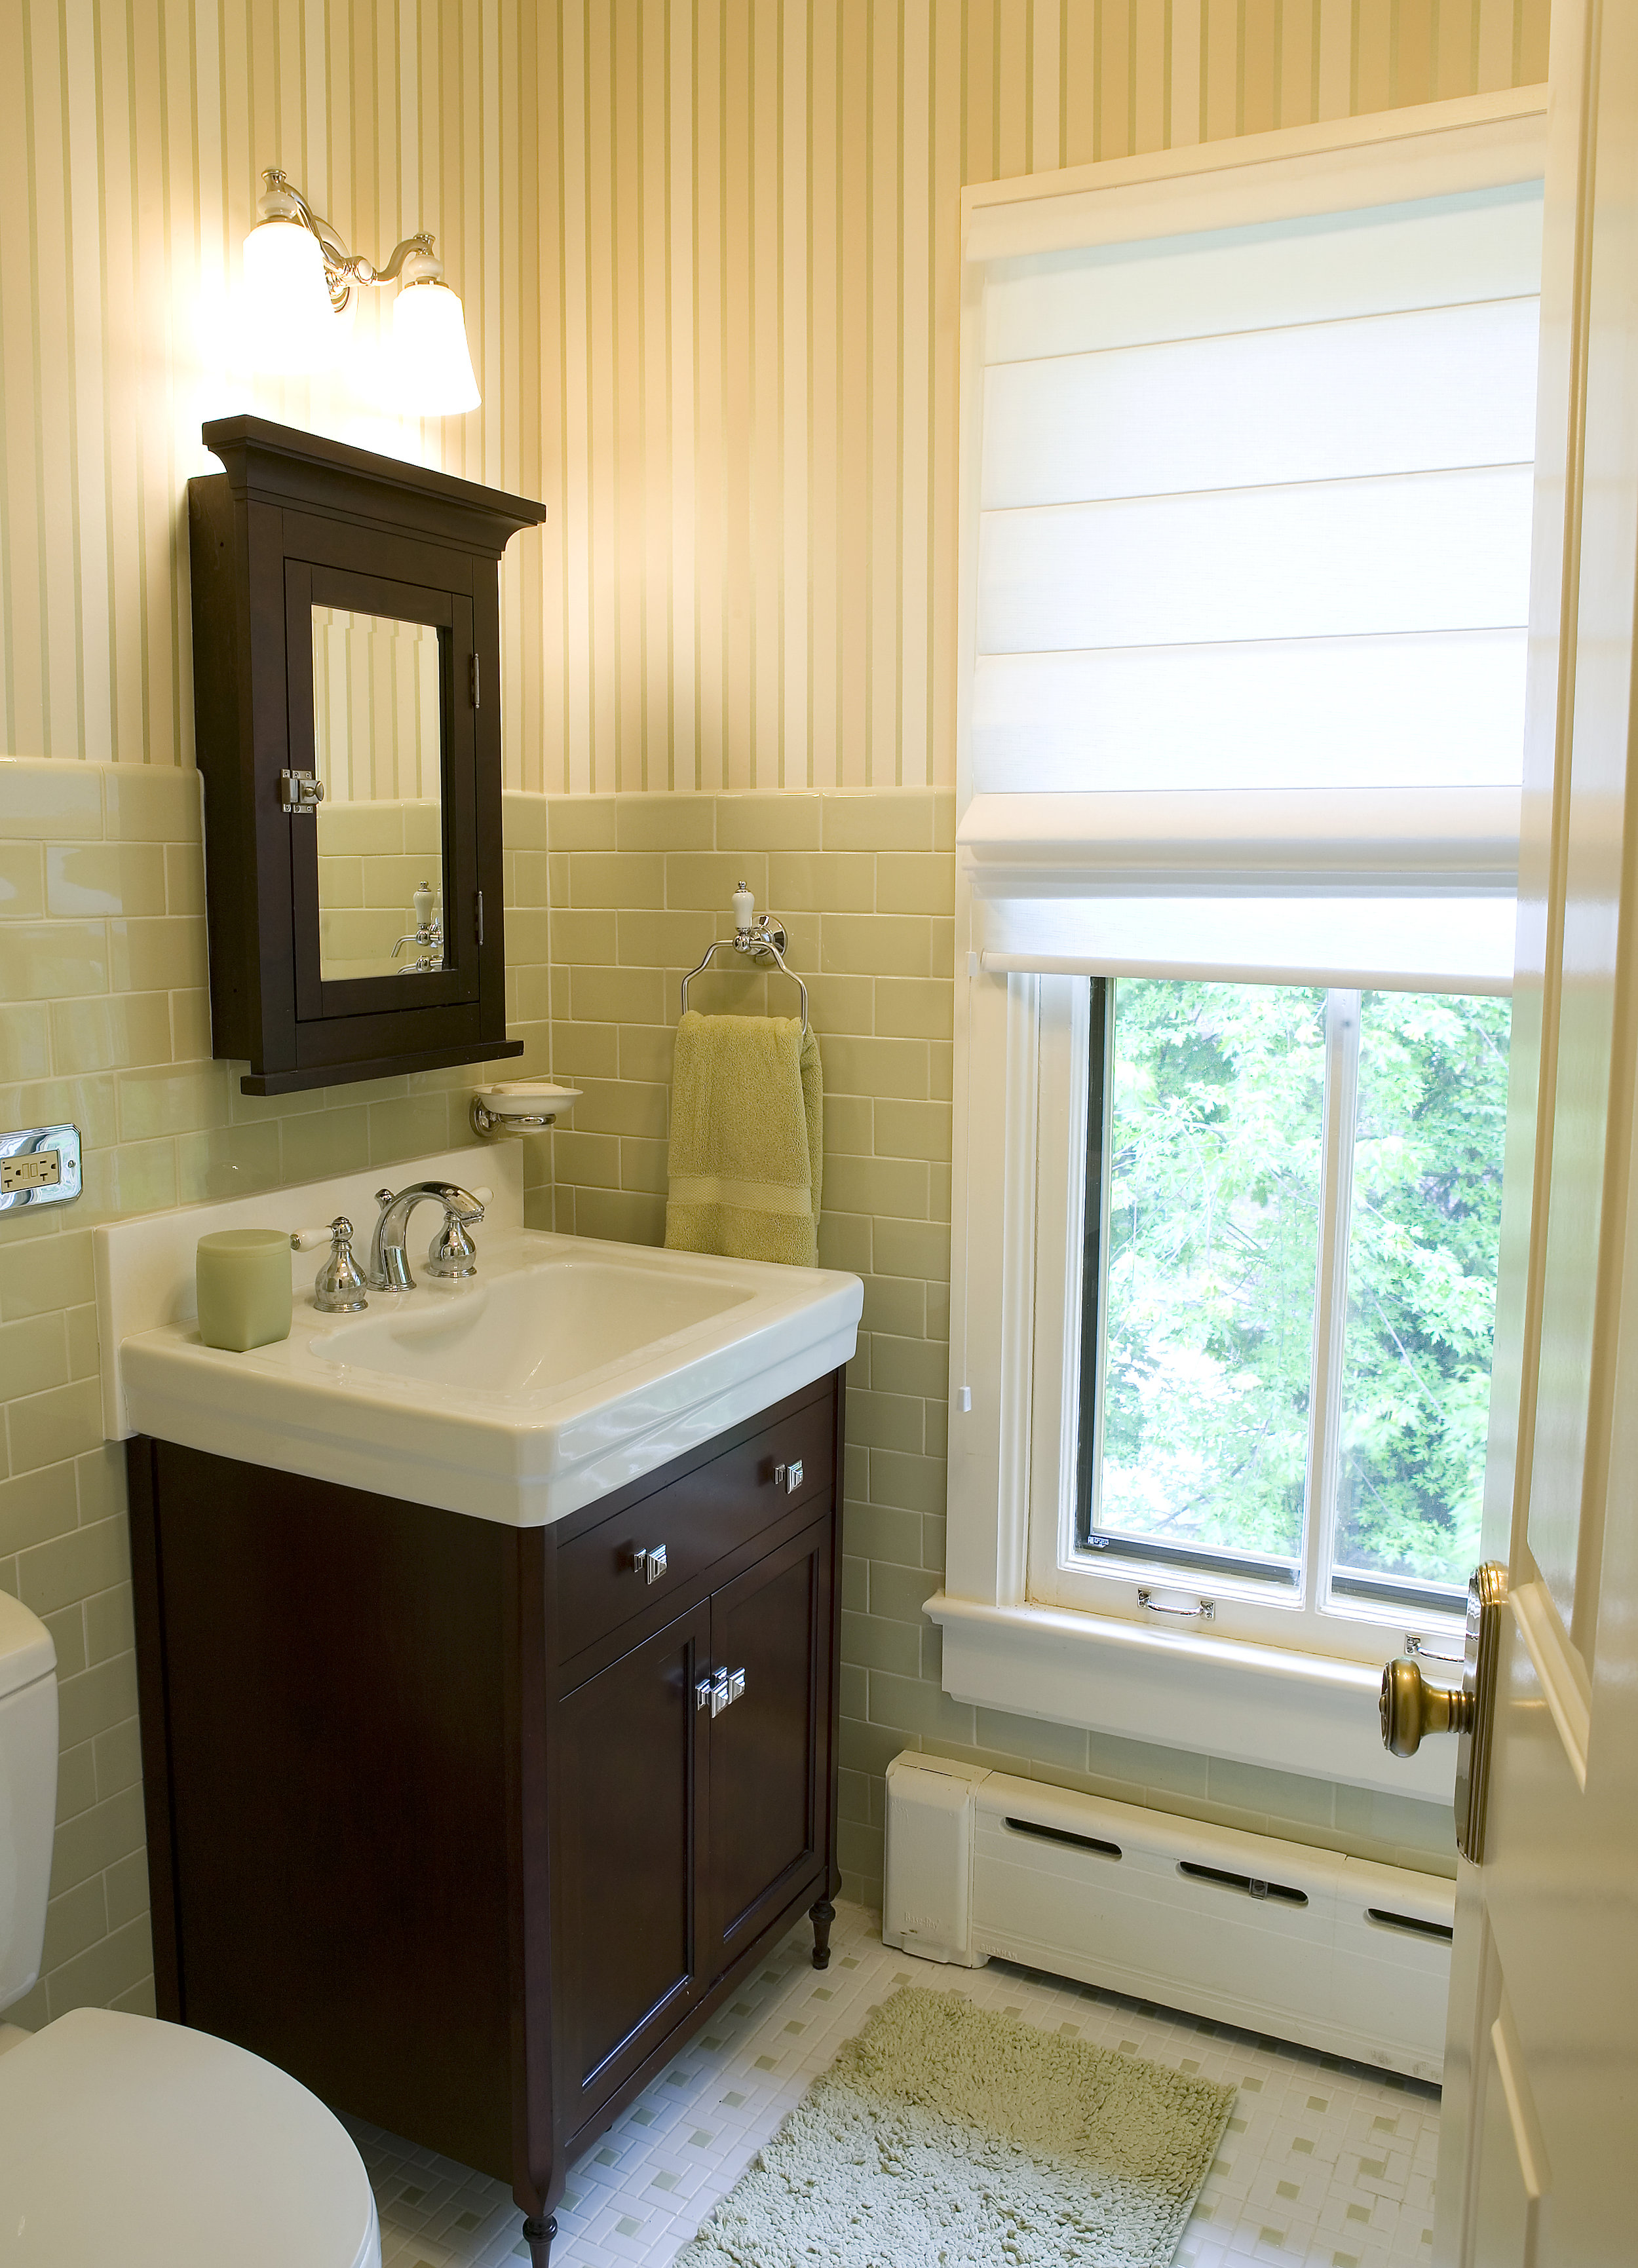 Bathroom interior design 1210 GREENWOOD 007.jpg